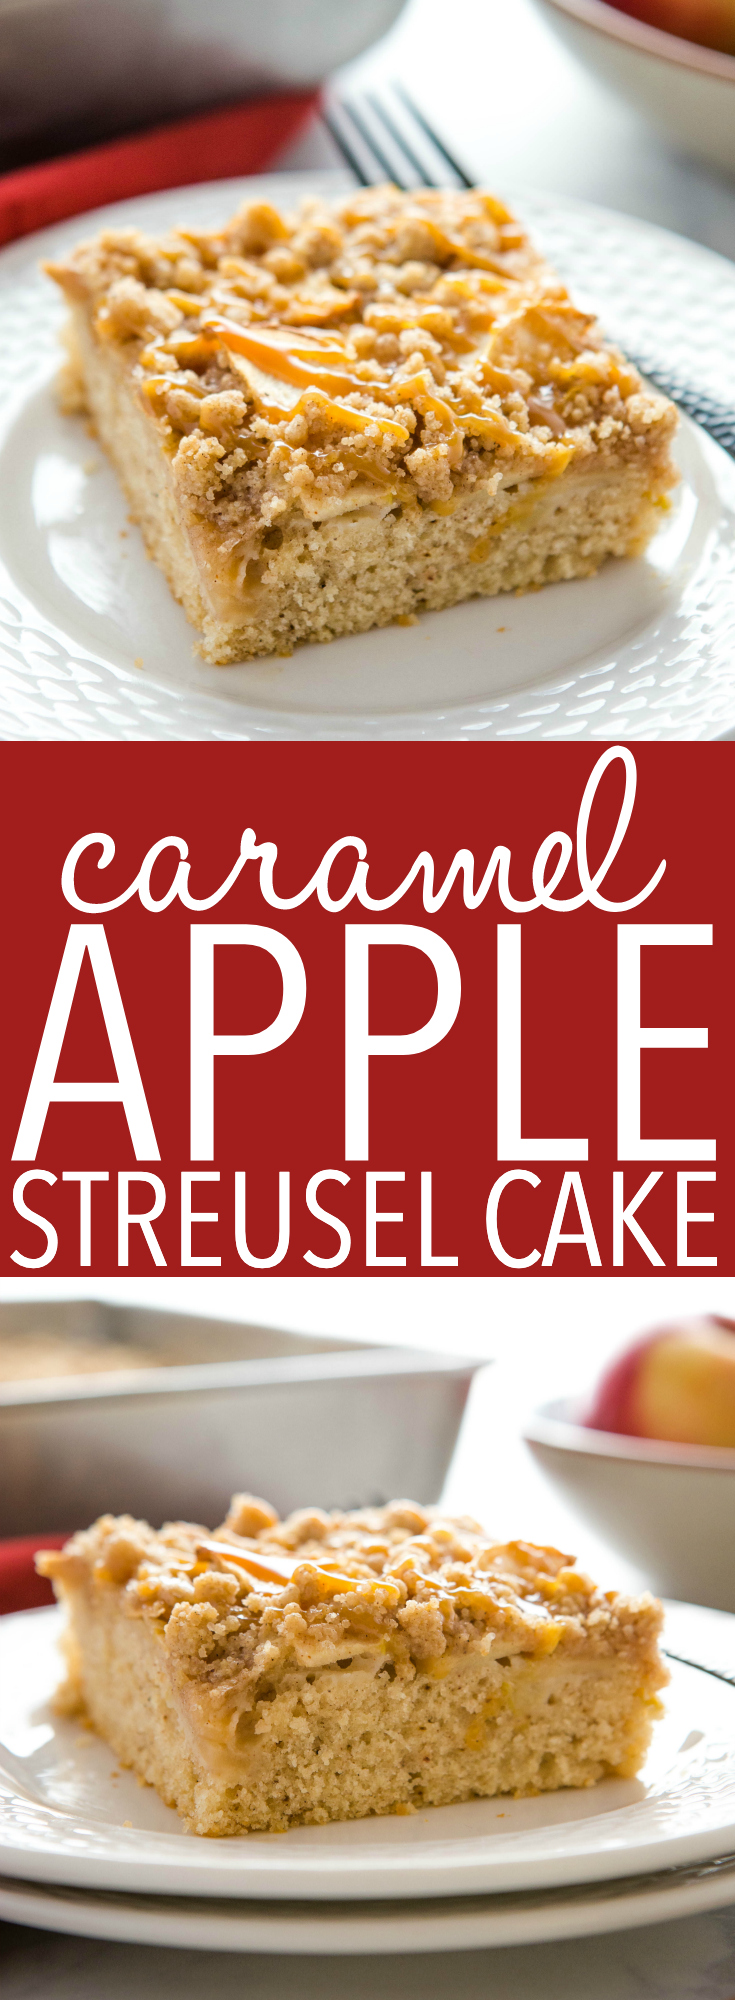 This Caramel Apple Streusel Cake is the perfect fall and winter dessert with an easy-to make tender cake base, fresh apples, and a delicious streusel topping, drizzled with caramel sauce! Recipe from thebusybaker.ca! #apple #cake #streusel #platz #german #caramel #fall #recipe #sheetcake #foodblog #dessert #sweet via @busybakerblog